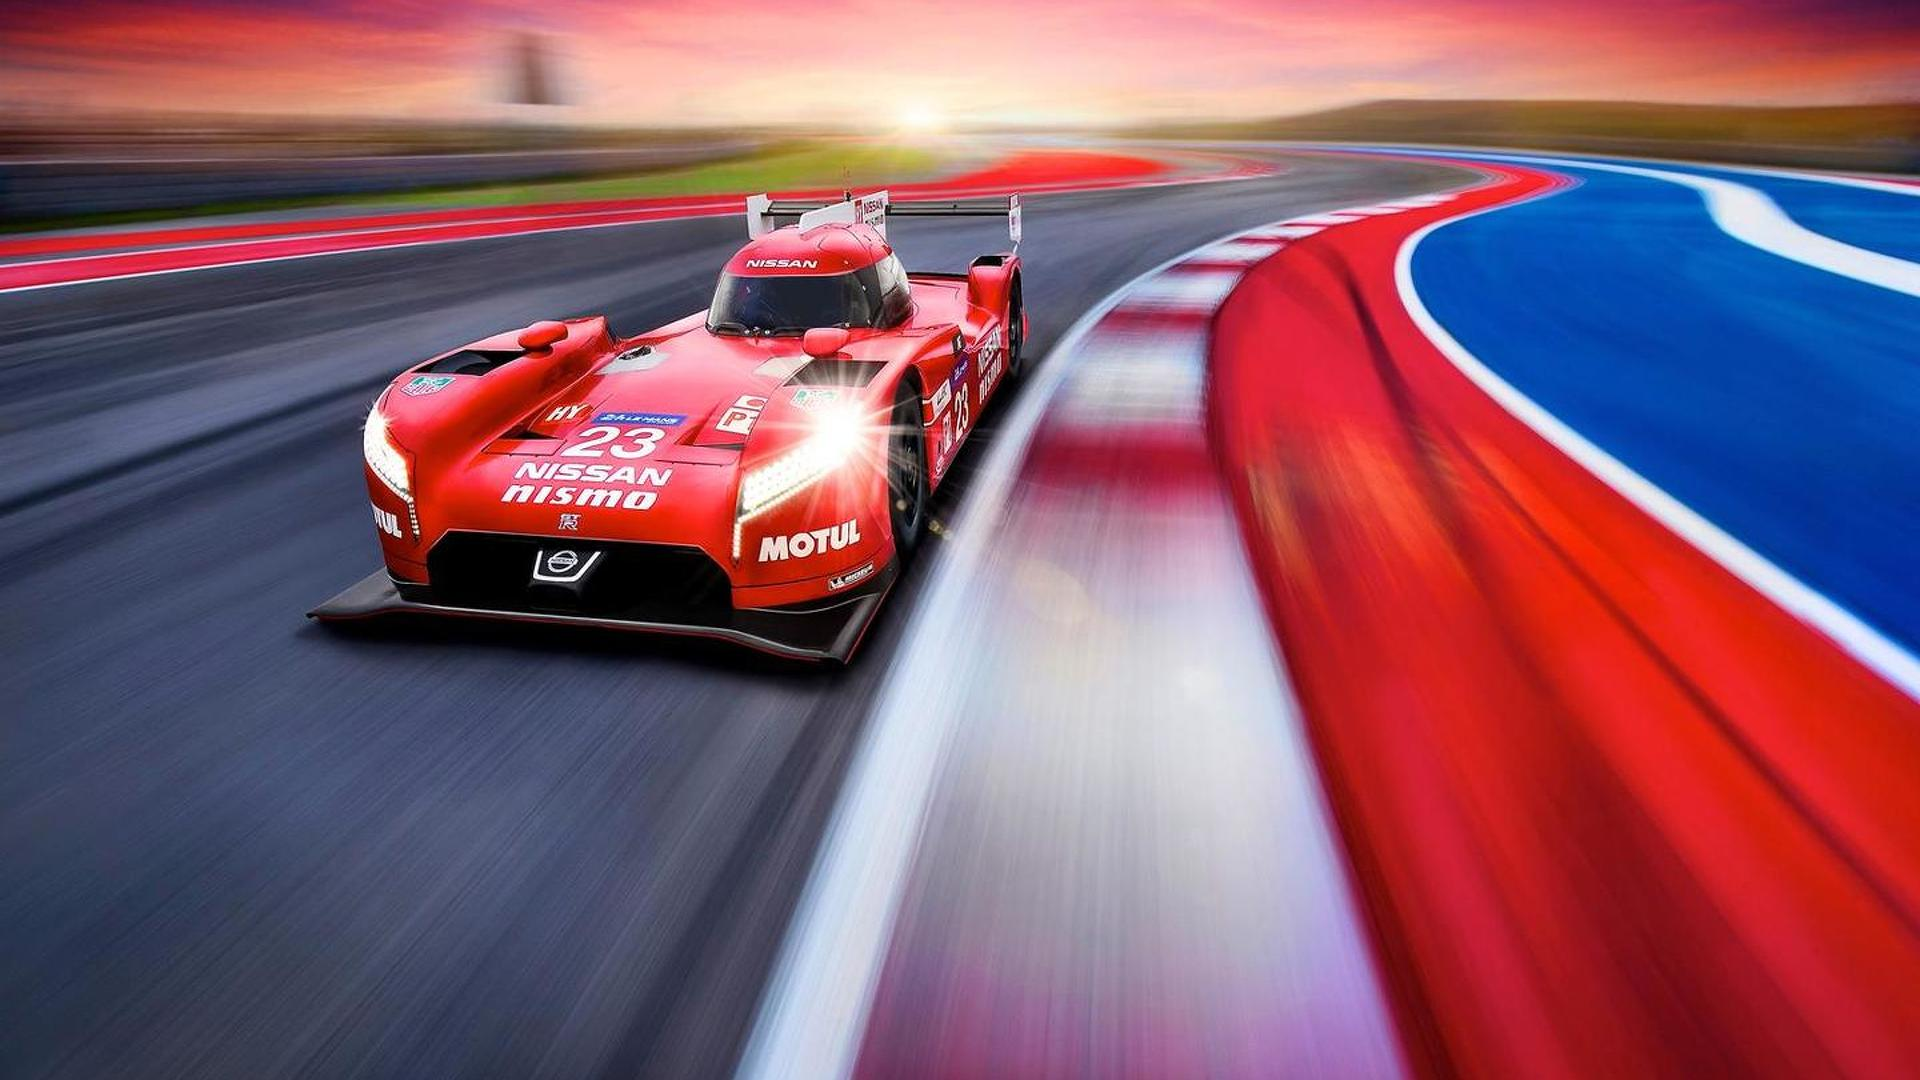 Nissan highlights the testing of the GT-R LM NISMO [video]